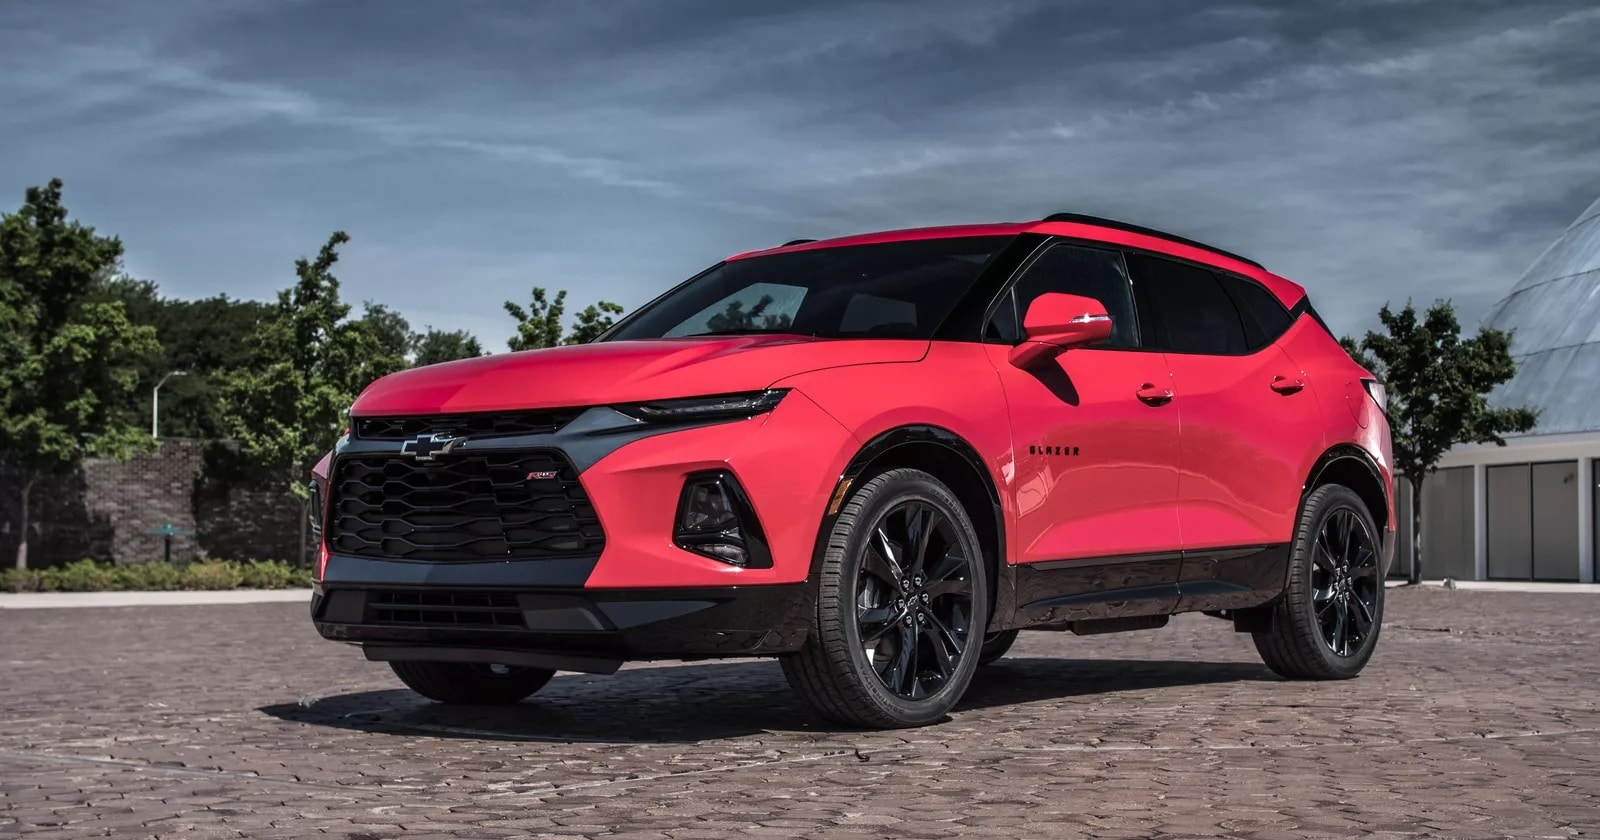 WIN 2019 Chevrolet Blazer RS